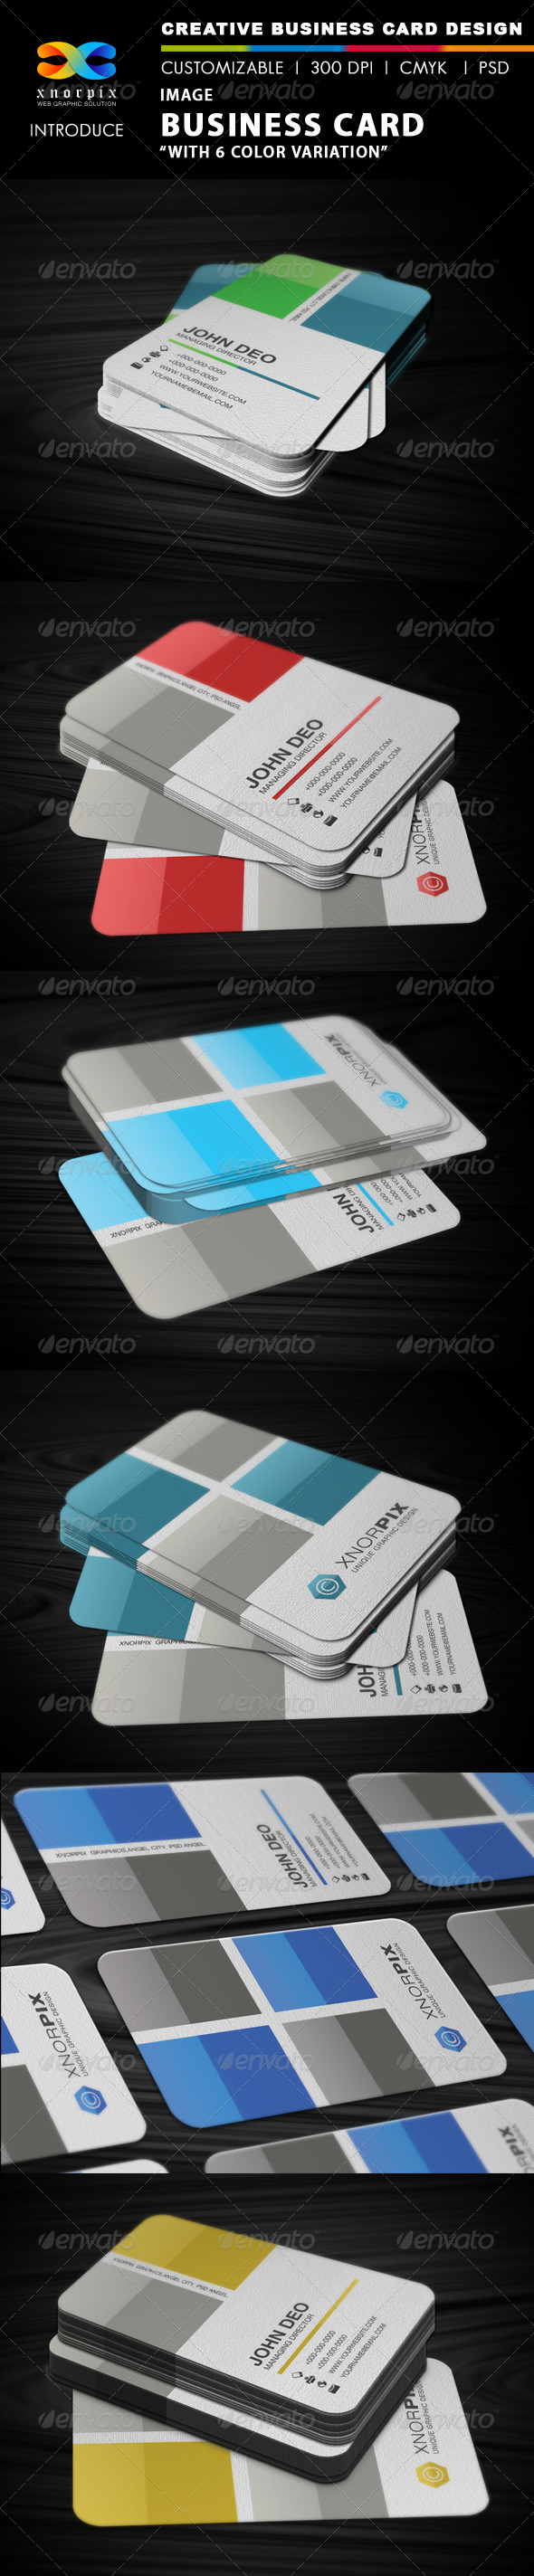 Image Business Card - Corporate Business Cards